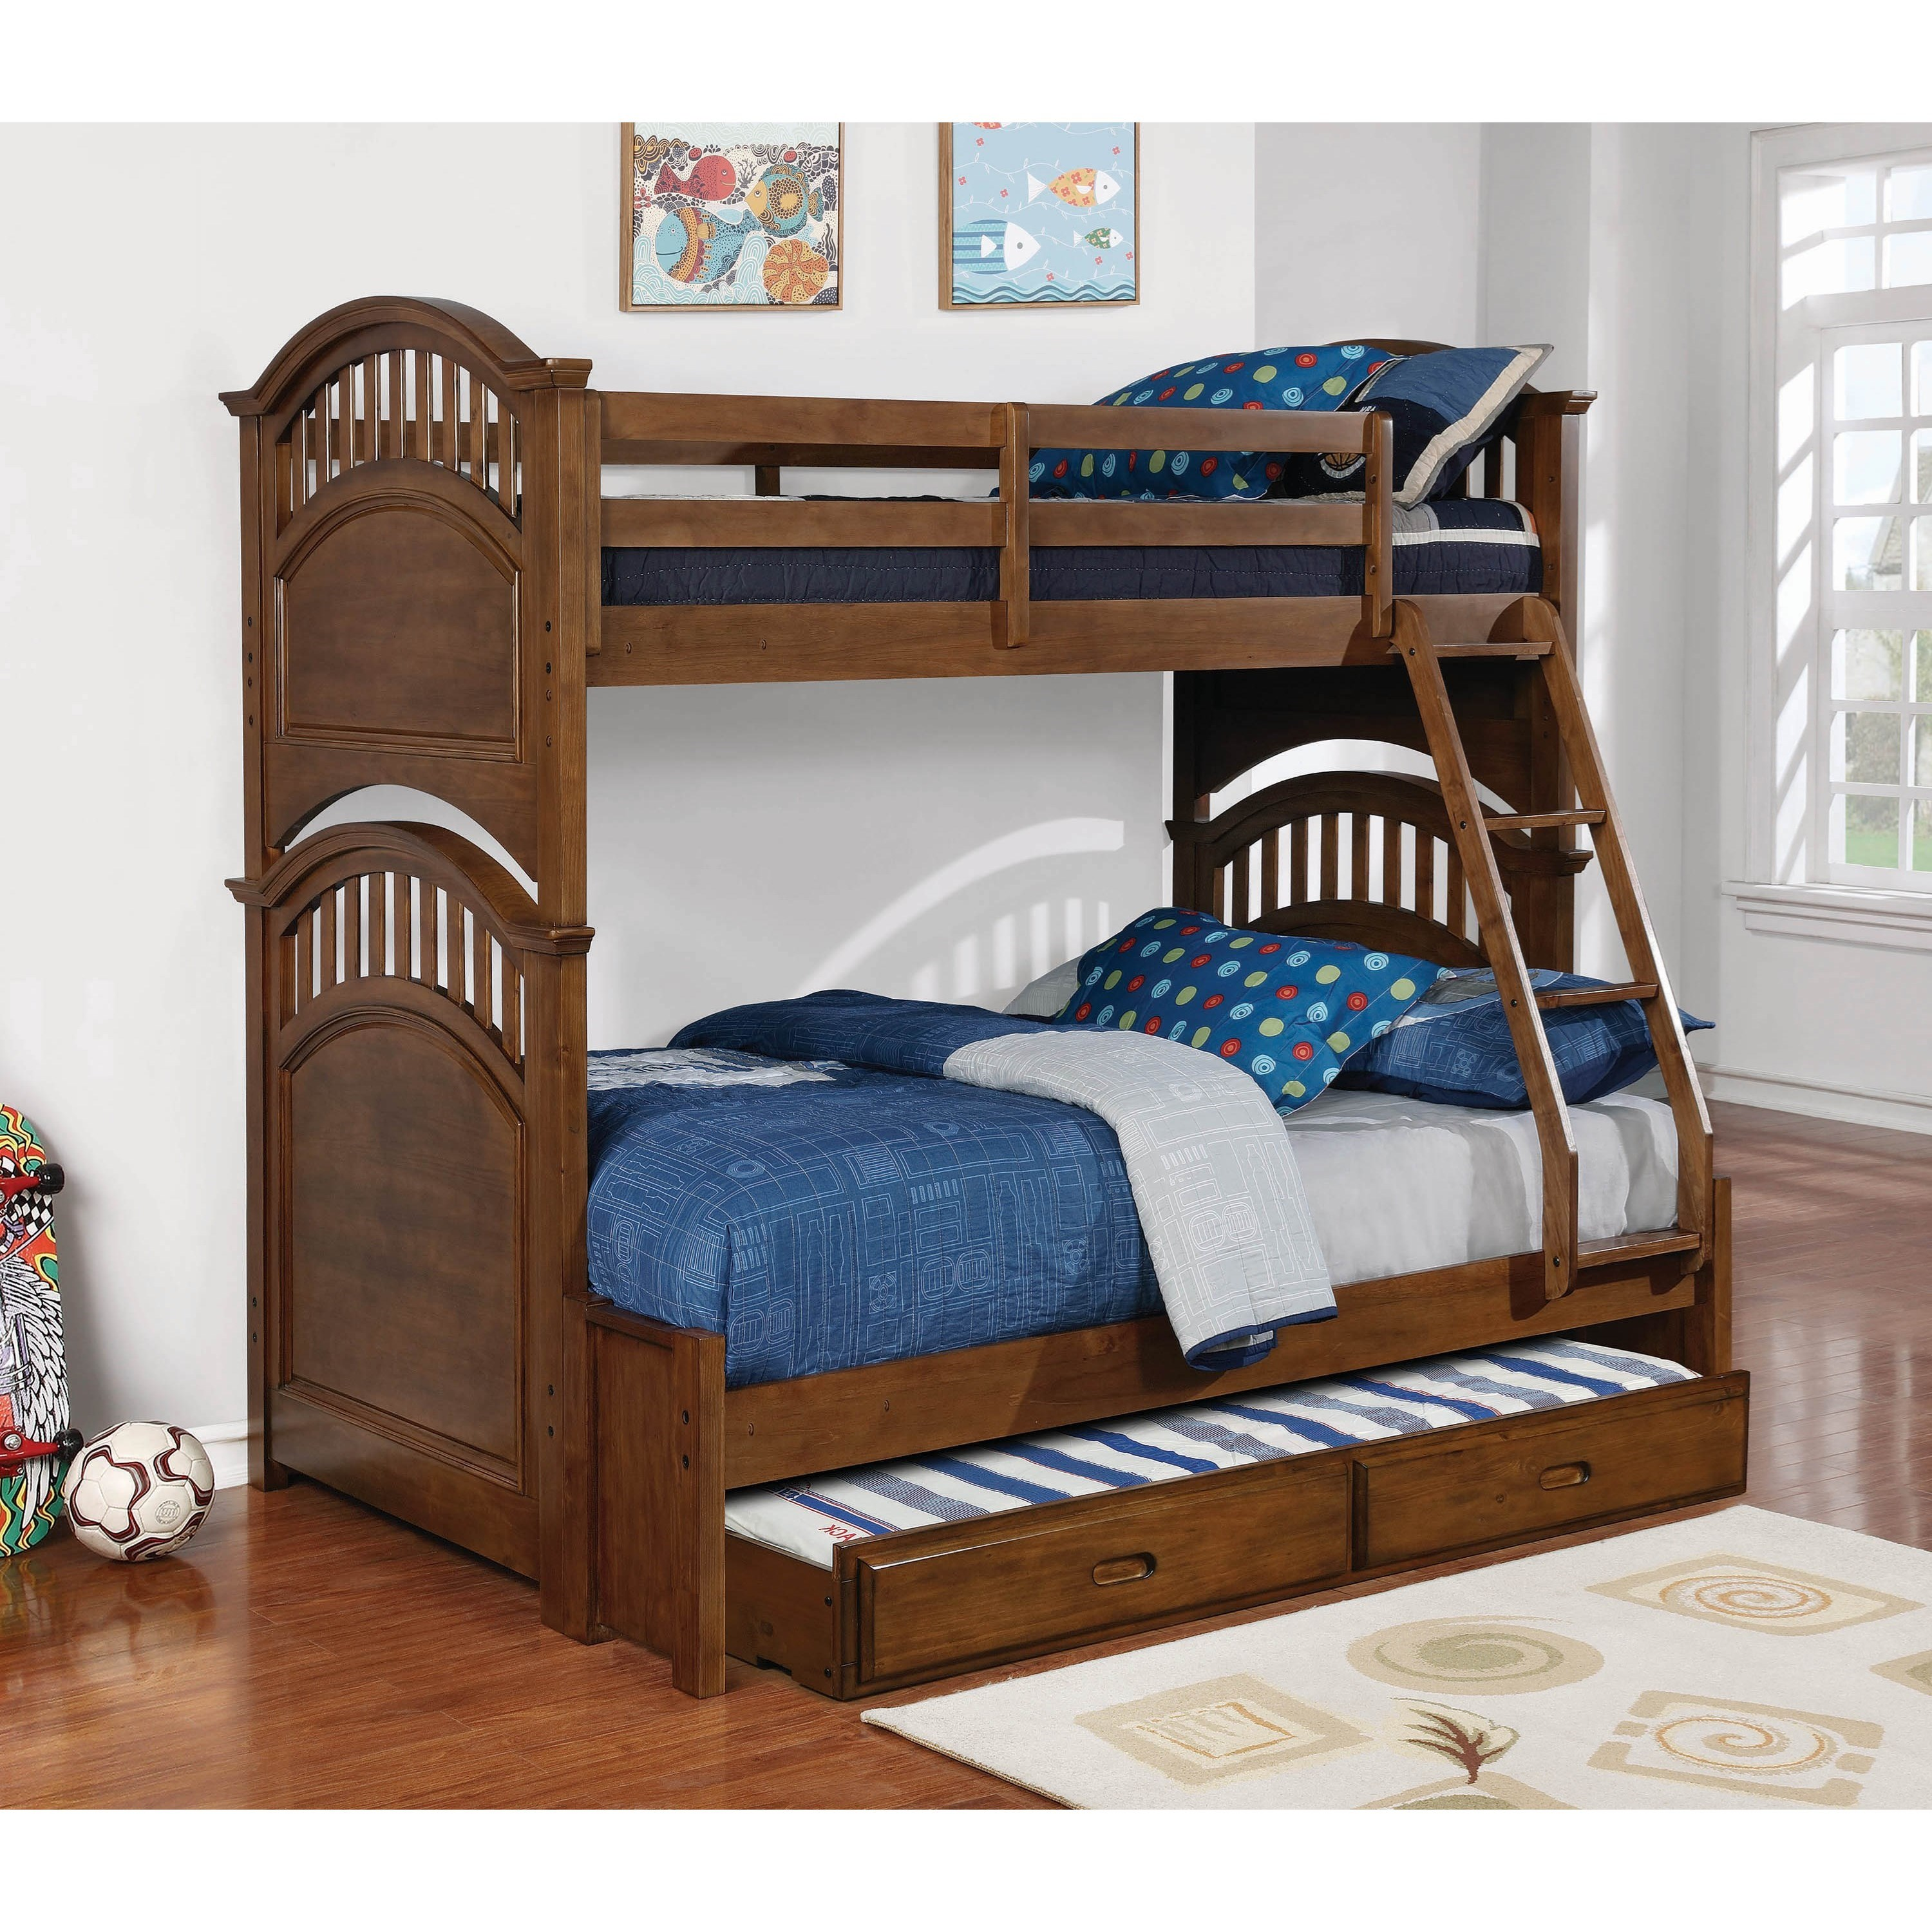 Halsted Twin over Full Bunk Bed w/ Storage Trundle